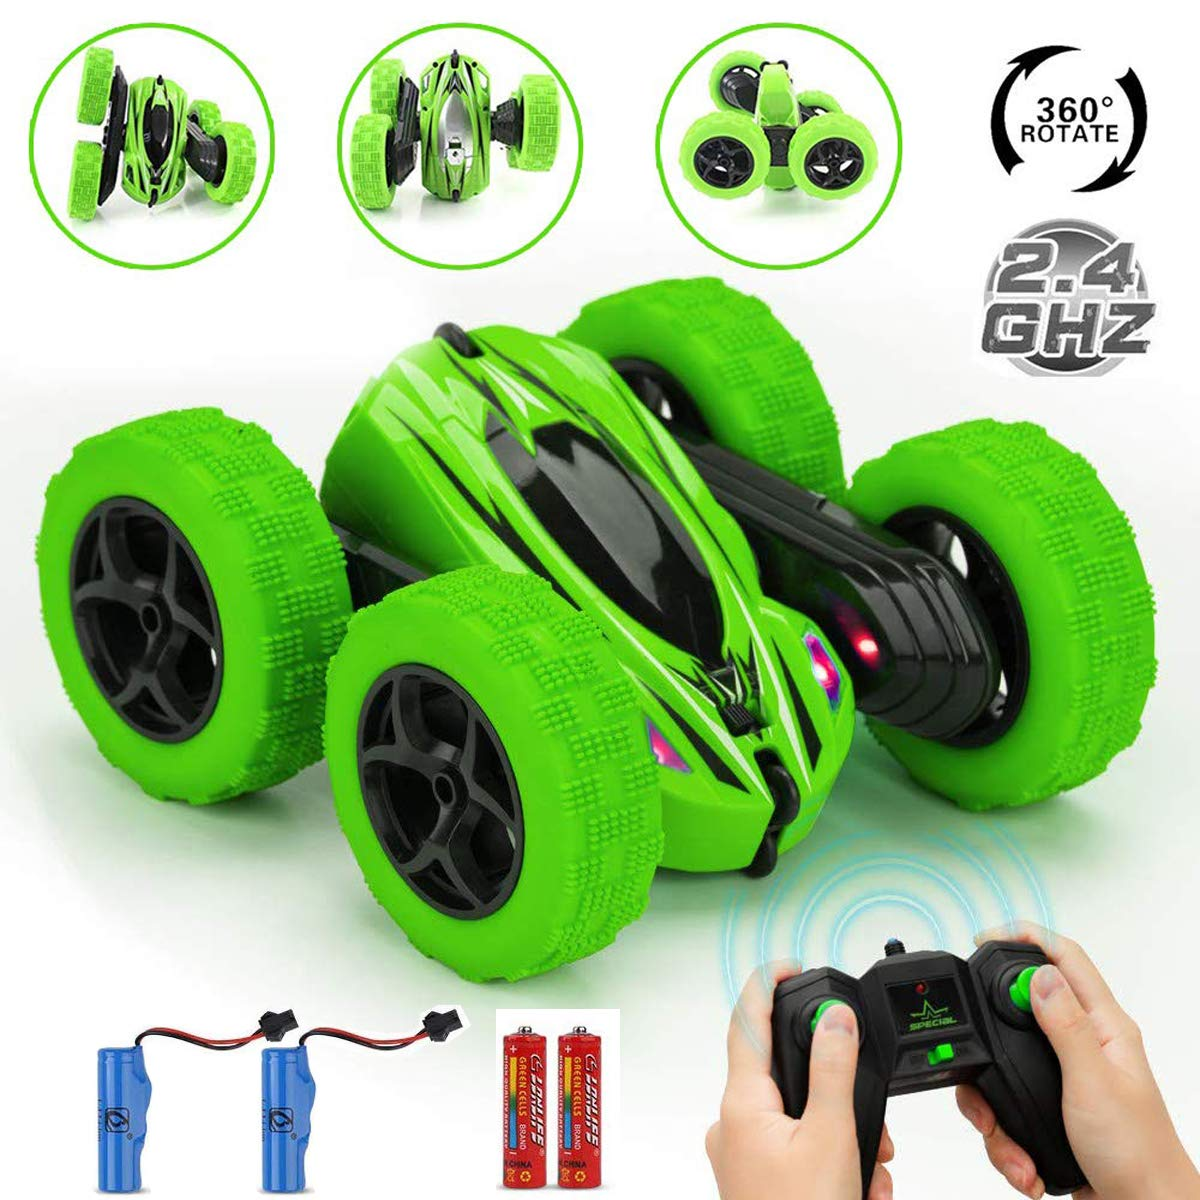 ECIEL RC Remote Control Car, Durable RC Stunt Cars Toys for Kids, Double Sided Rotating 360°Flips Cars -2.4GHz High Speed Off Road Vehicles for 3-12 Years Old Boy (4 Batteries Included)